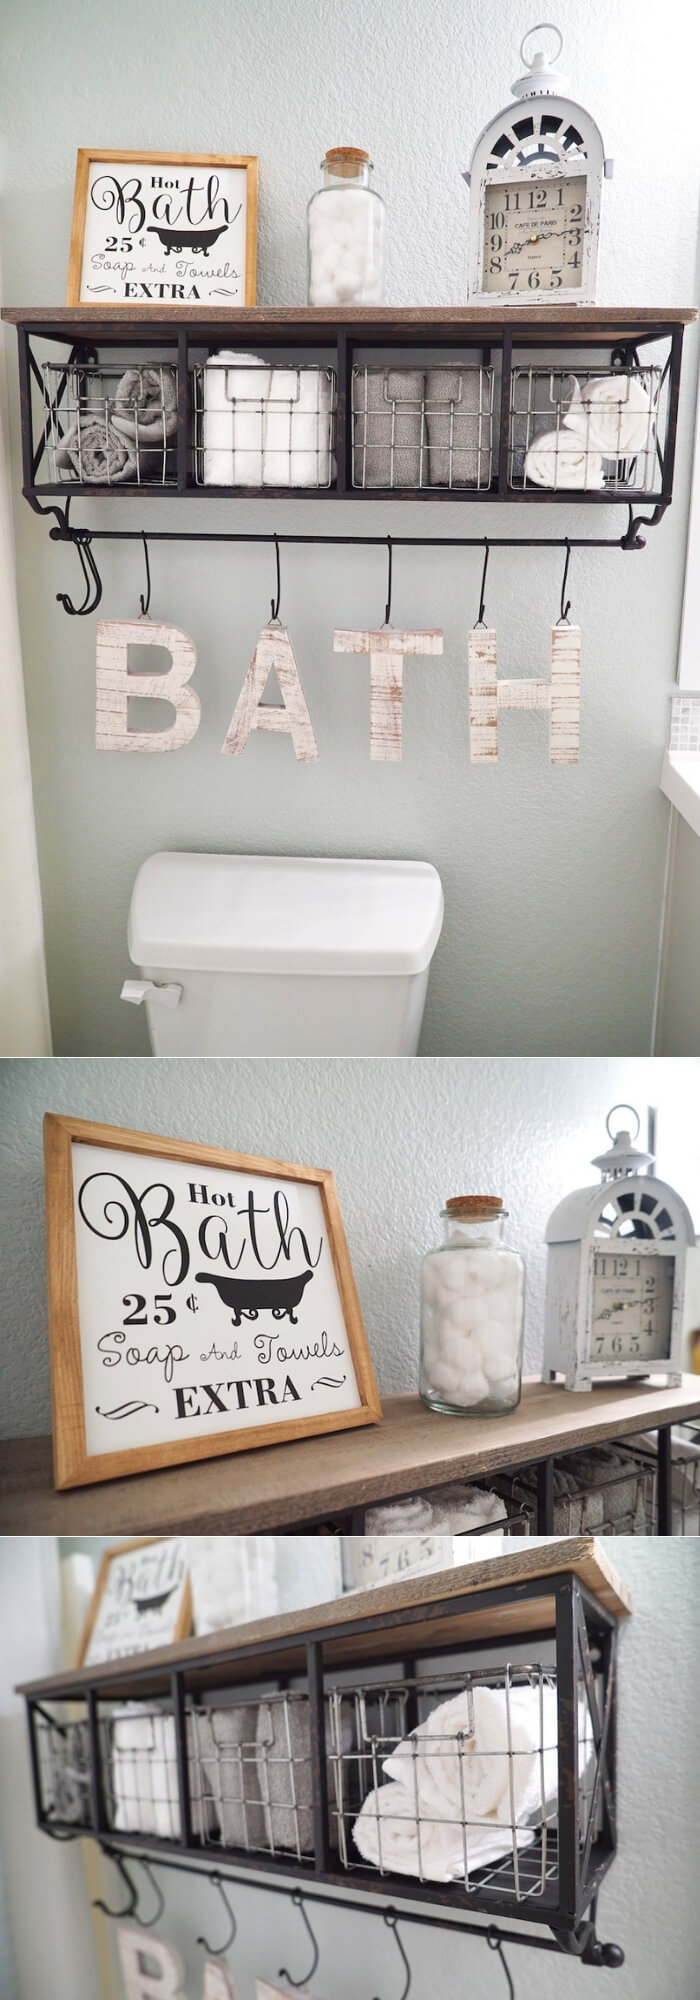 Bathroom Storage Makeover | Best Over the Toilet Storage Ideas for Bathroom